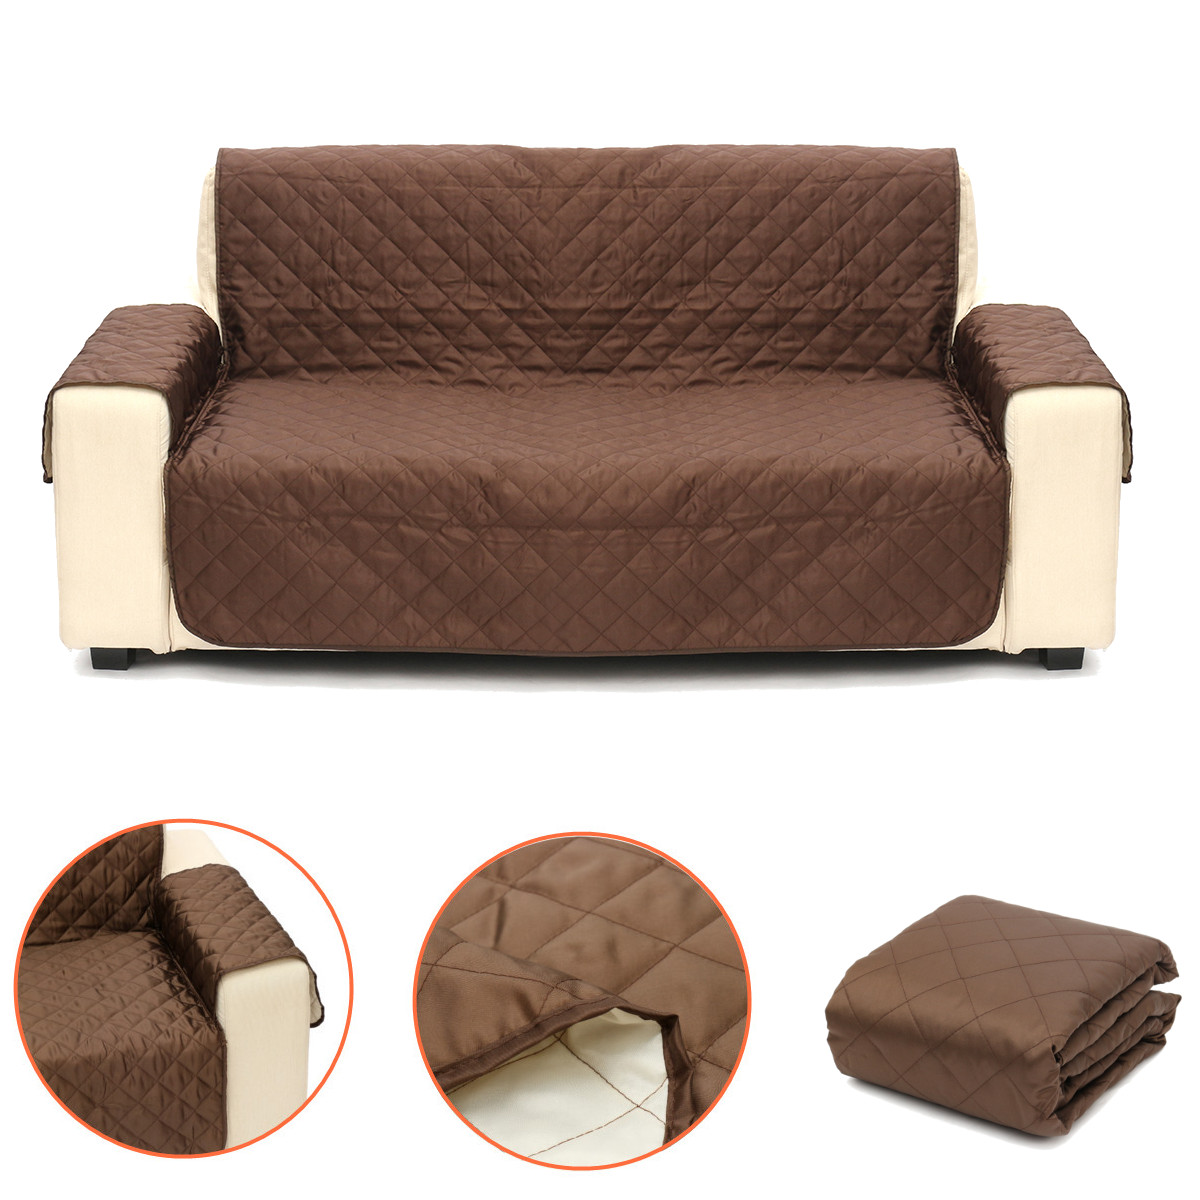 Tremendous Us 13 53 42 Off Pet Dog Sofa Slipcovers Furniture Couch Protective Seat Cover Pad Reversible Cushion Fits 2 Seats Chocolate In Sofa Cover From Home Gmtry Best Dining Table And Chair Ideas Images Gmtryco